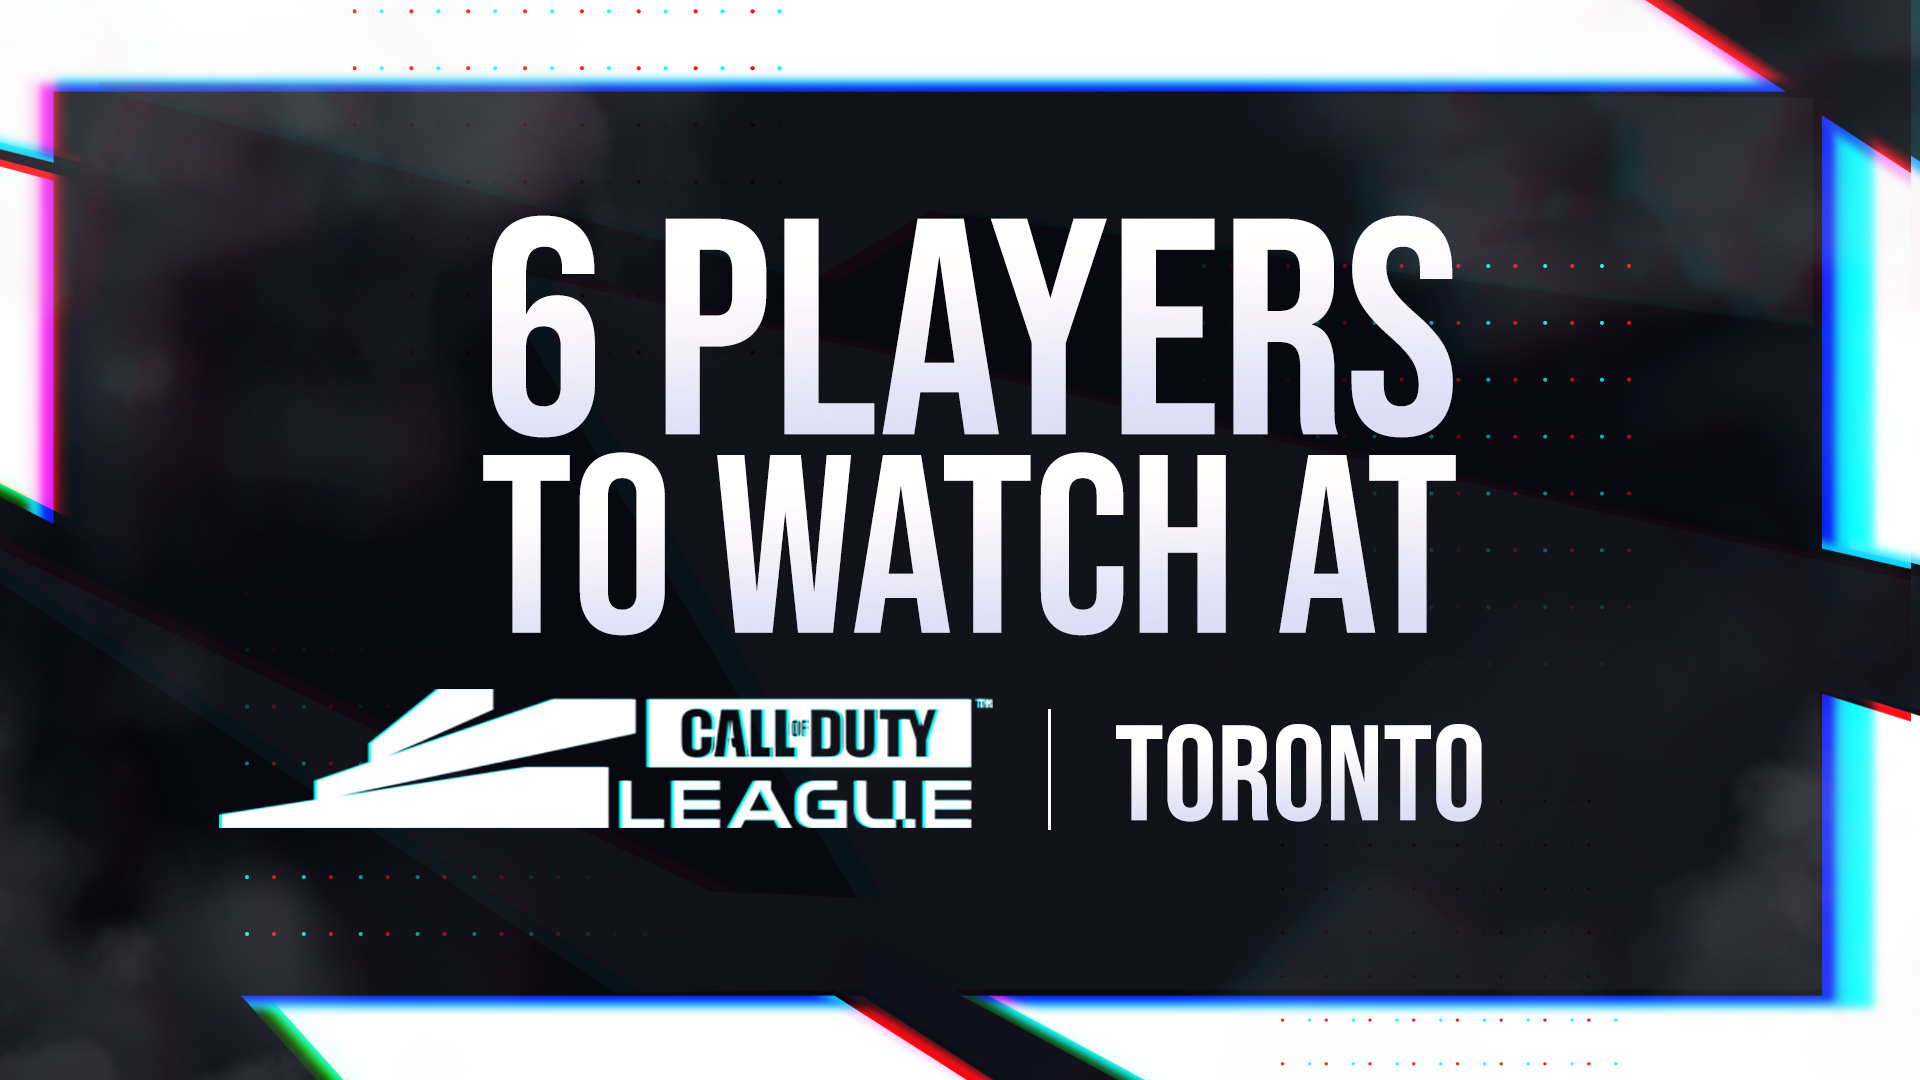 6 players to watch at CDL Toronto.